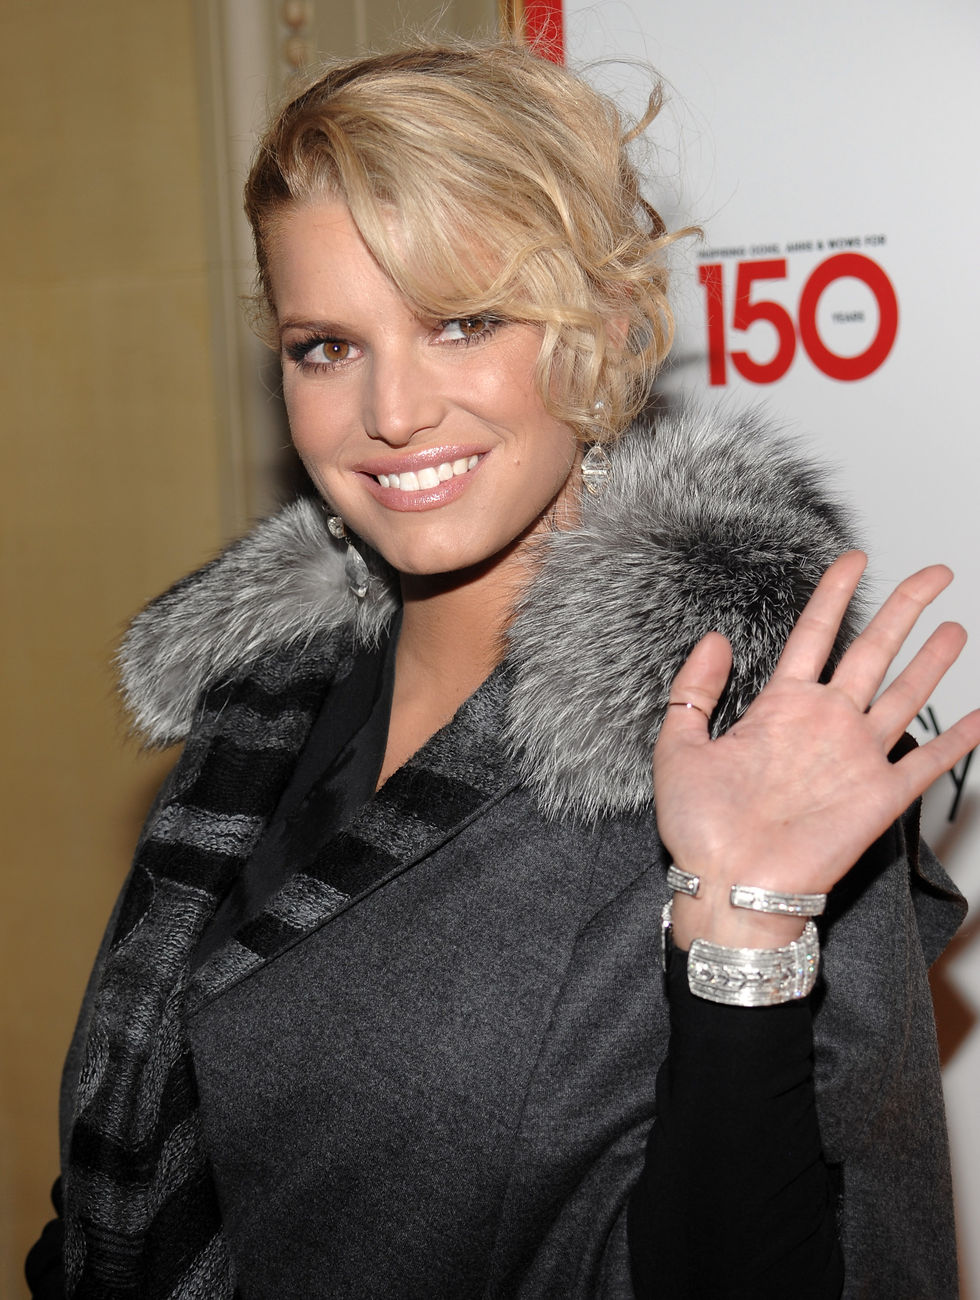 jessica-simpson-macys-150th-birthday-celebration-gala-in-new-york-01